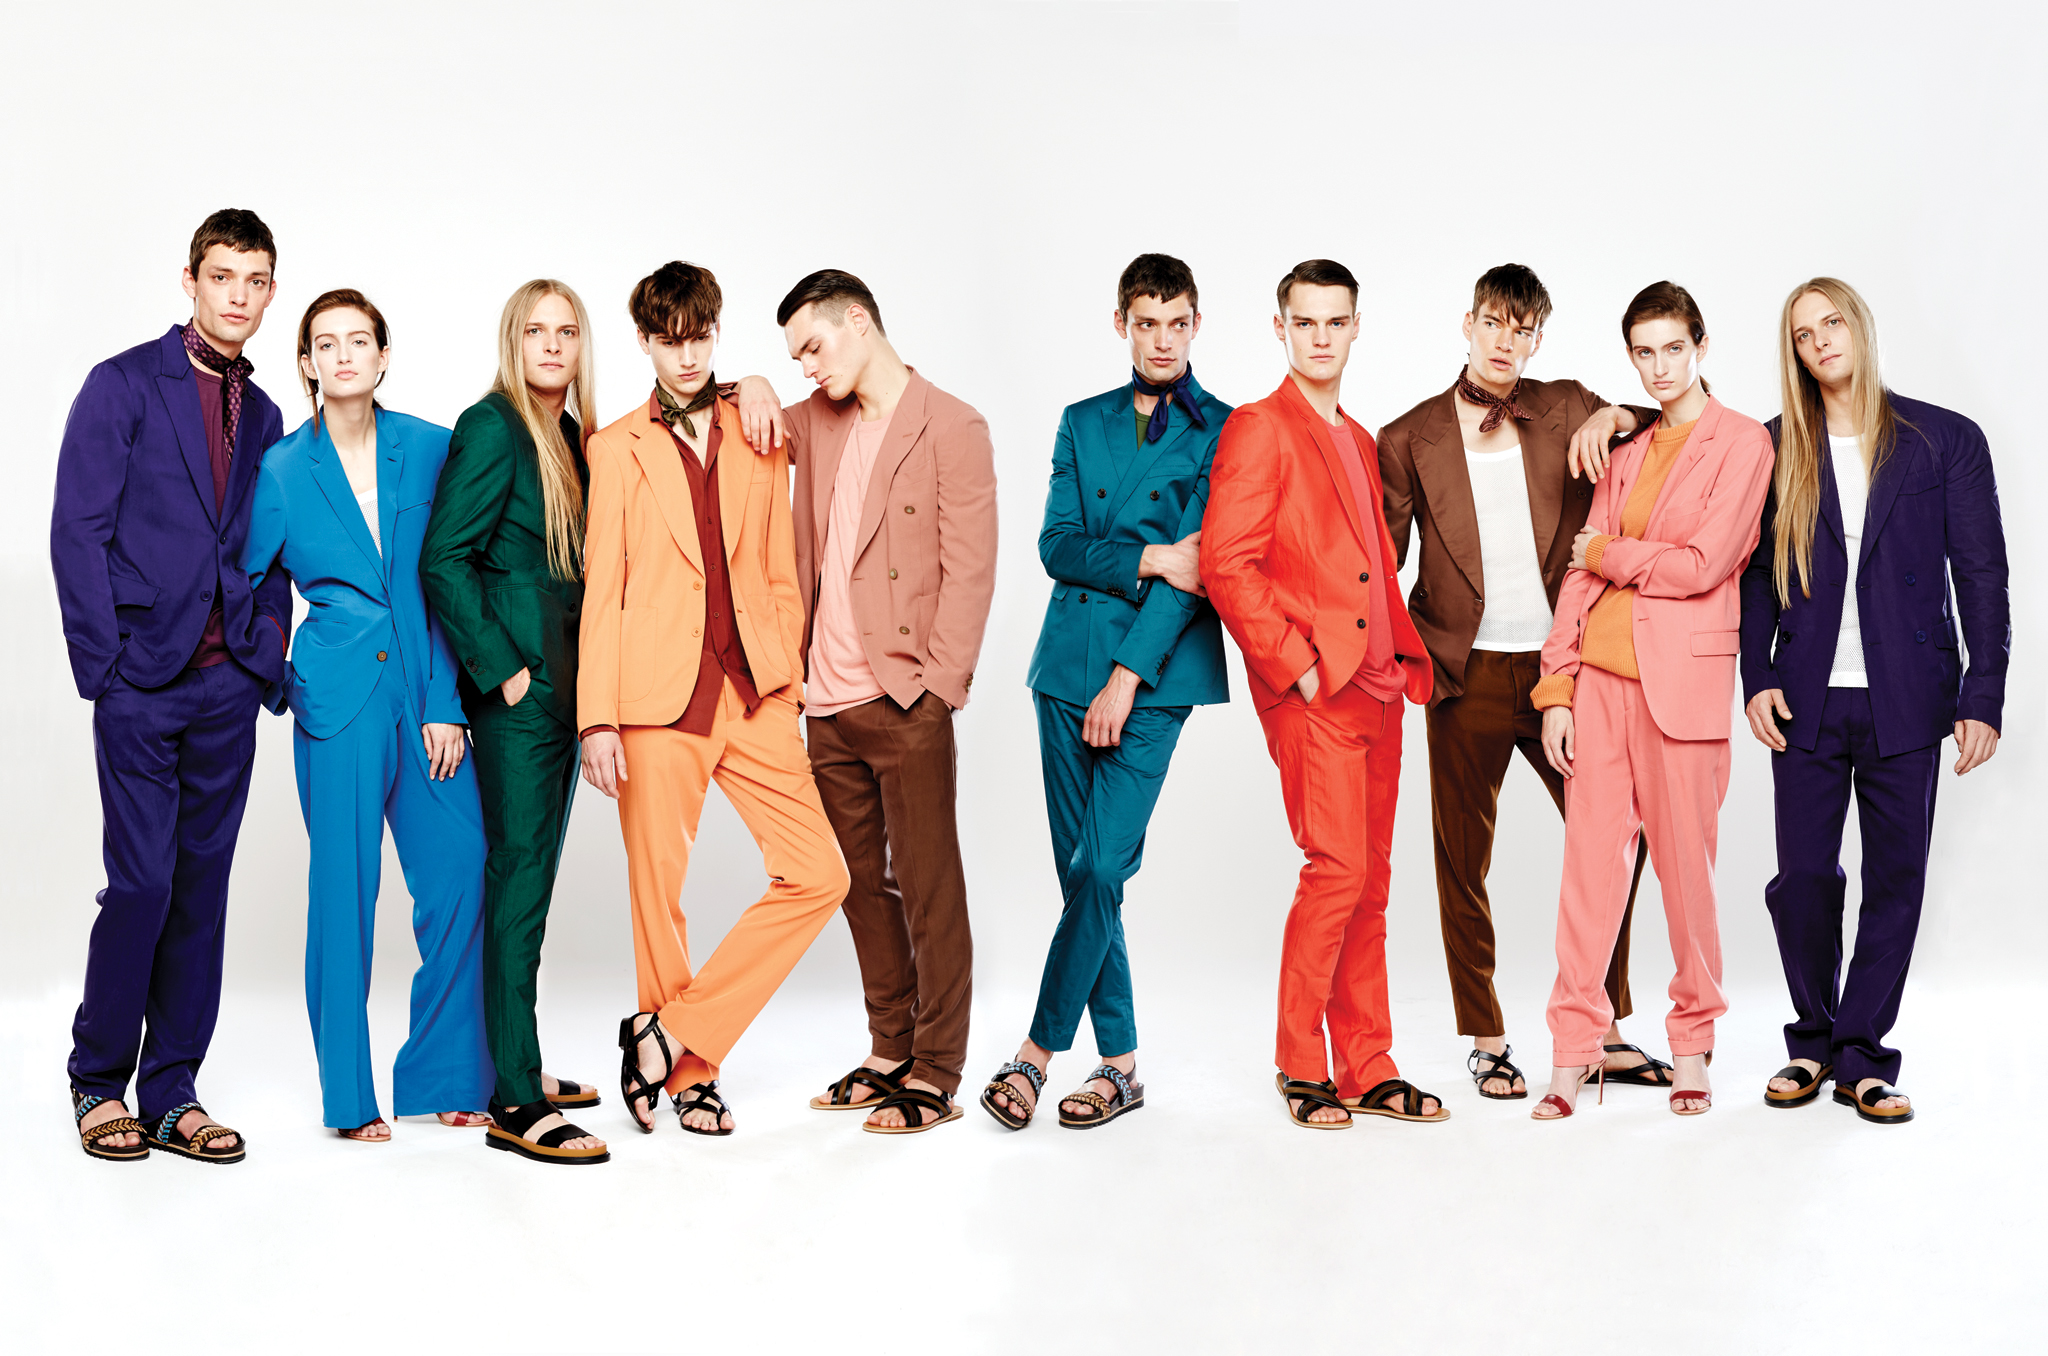 From Left: Nick wears Berluti's suit and Sunspel's T-shirt, both in cotton. Salvatore Ferragamo sandals. Kelin wears Etro's silk suit and Burberry Prorsum's cotton tank top. Francesco Russo pumps. Max wears Casely-Hayford's cotton suit. Gucci sandals. Ted wears Bottega Veneta's wool suit and silk shirt. Giuseppe Zanotti sandals. Christian wears Boglioli's wool blazer, American Apparel's cotton T-shirt and Ralph Lauren Purple Label's silk gabardine pants. Bally sandals. Nick wears Tommy Hilfiger's cotton and spandex suit and Oliver Spencer's cotton T-shirt. Corneliani scarf; Salvatore Ferragamo sandals. Christian wears Paul Smith's wool suit and American Apparel's cotton T-shirt. Bally sandals. Philipp wears Ralph Lauren Purple Label's silk gabardine blazer, Burberry Prorsum's cotton tank top and Ami's cotton pants. Giuseppe Zanotti sandals. Kelin wears Hugo's lyocell and polyester suit and Bottega Veneta's cashmere sweater. Francesco Russo pumps. Max wears Berluti's suit and Dries Van Noten's tank top, both in cotton. Gucci sandals.